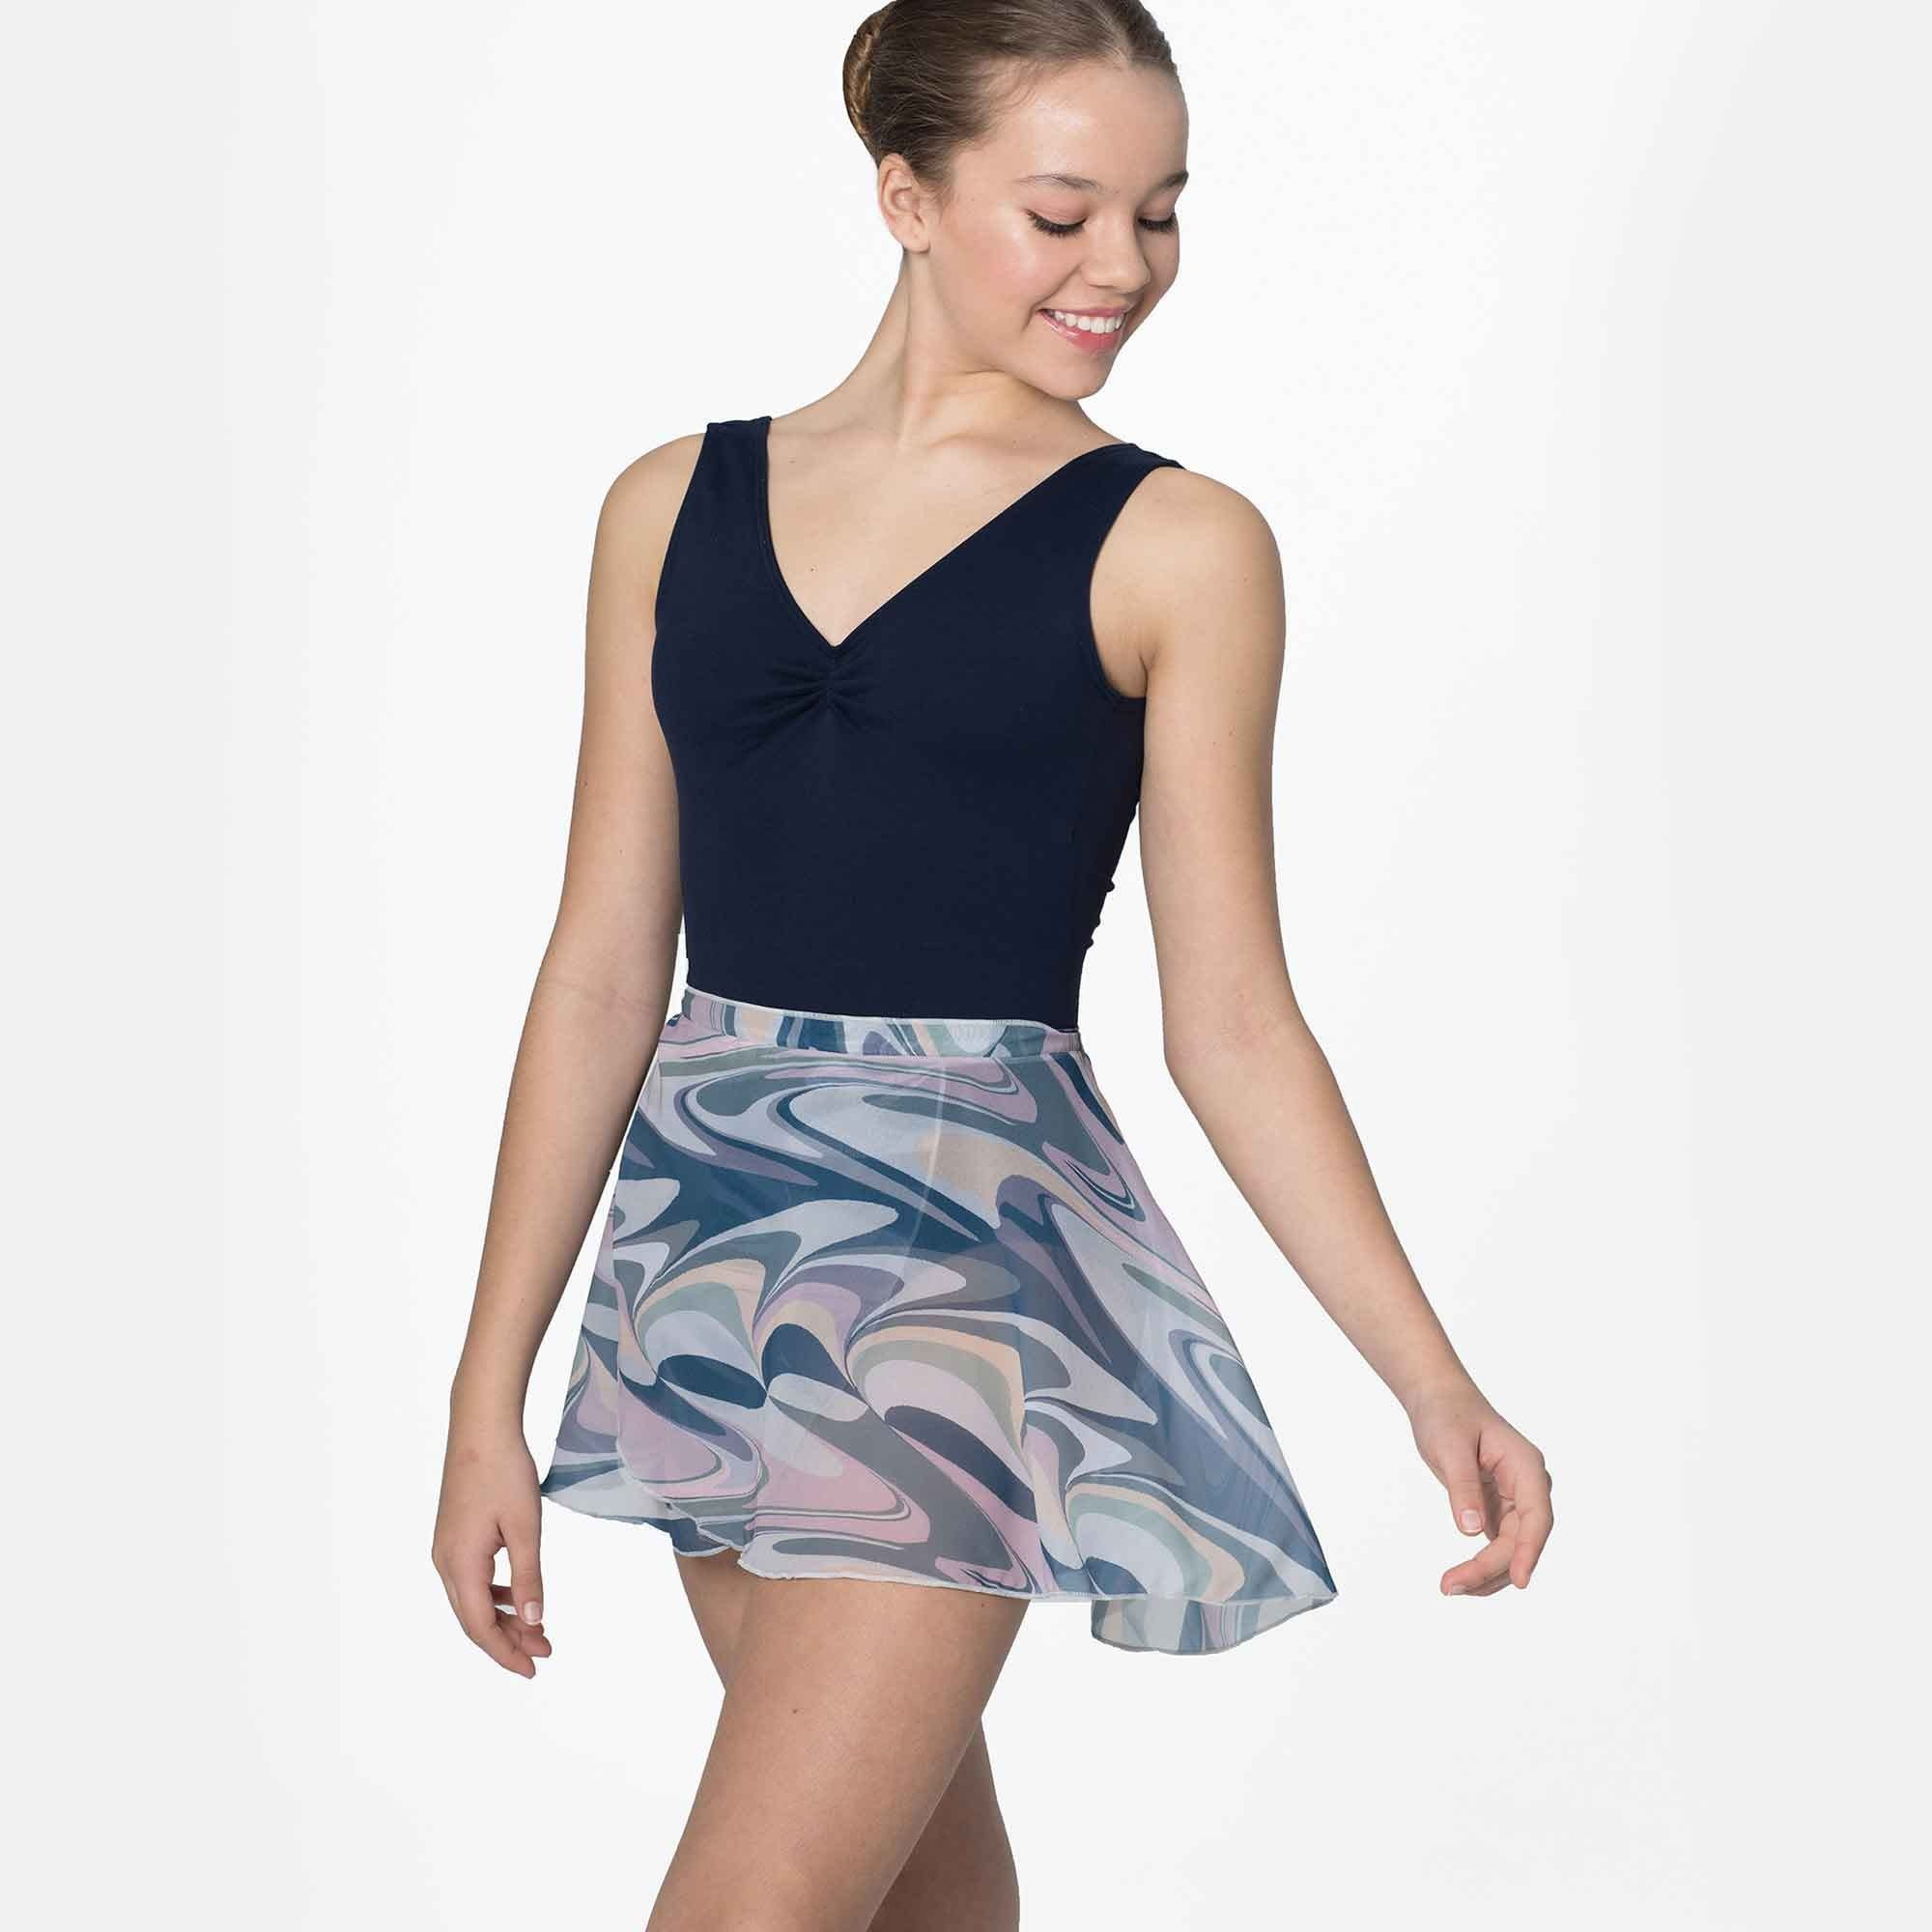 Intermezzo 7974-258-Wrap Skirt